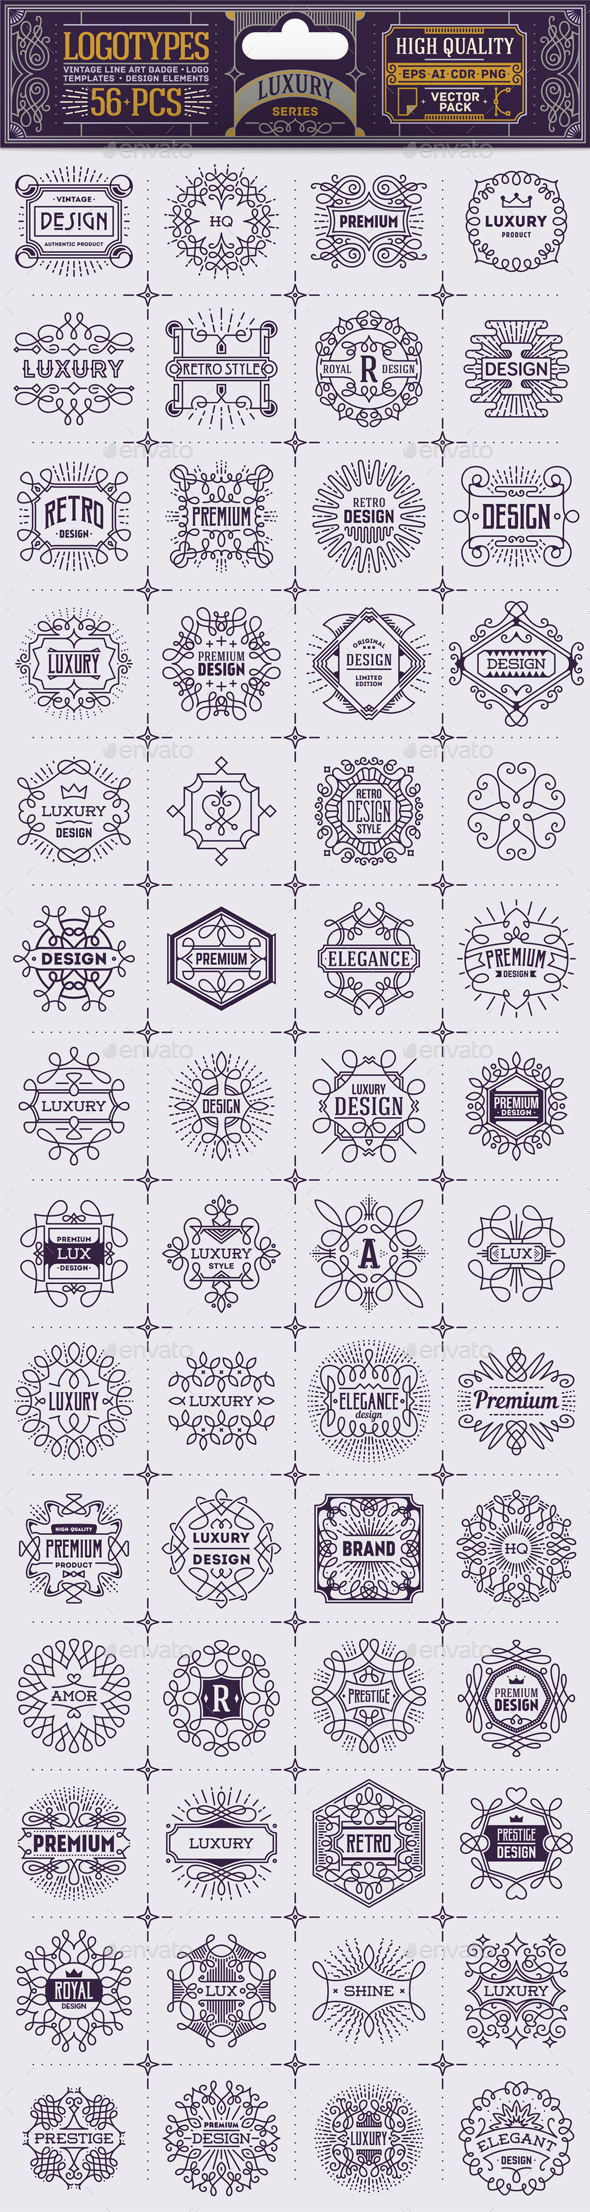 Sticker Design Graphics, Designs & Templates from GraphicRiver (Page 5)